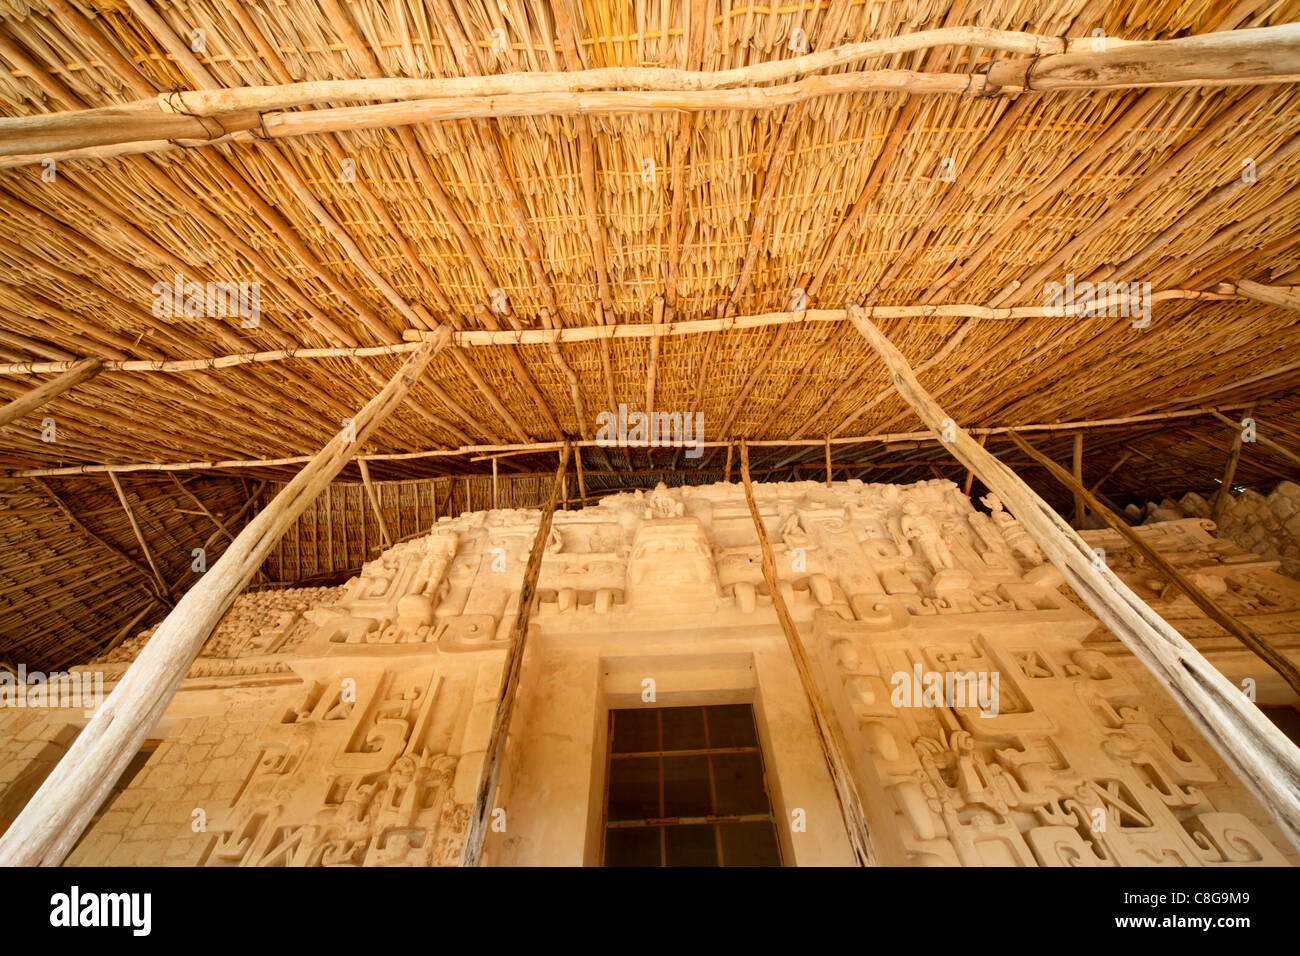 Preservation and recreation of the Tomb of Ukit Kan Le'K Tok, Ek Balam, Yucatan, Mexico - Stock Image